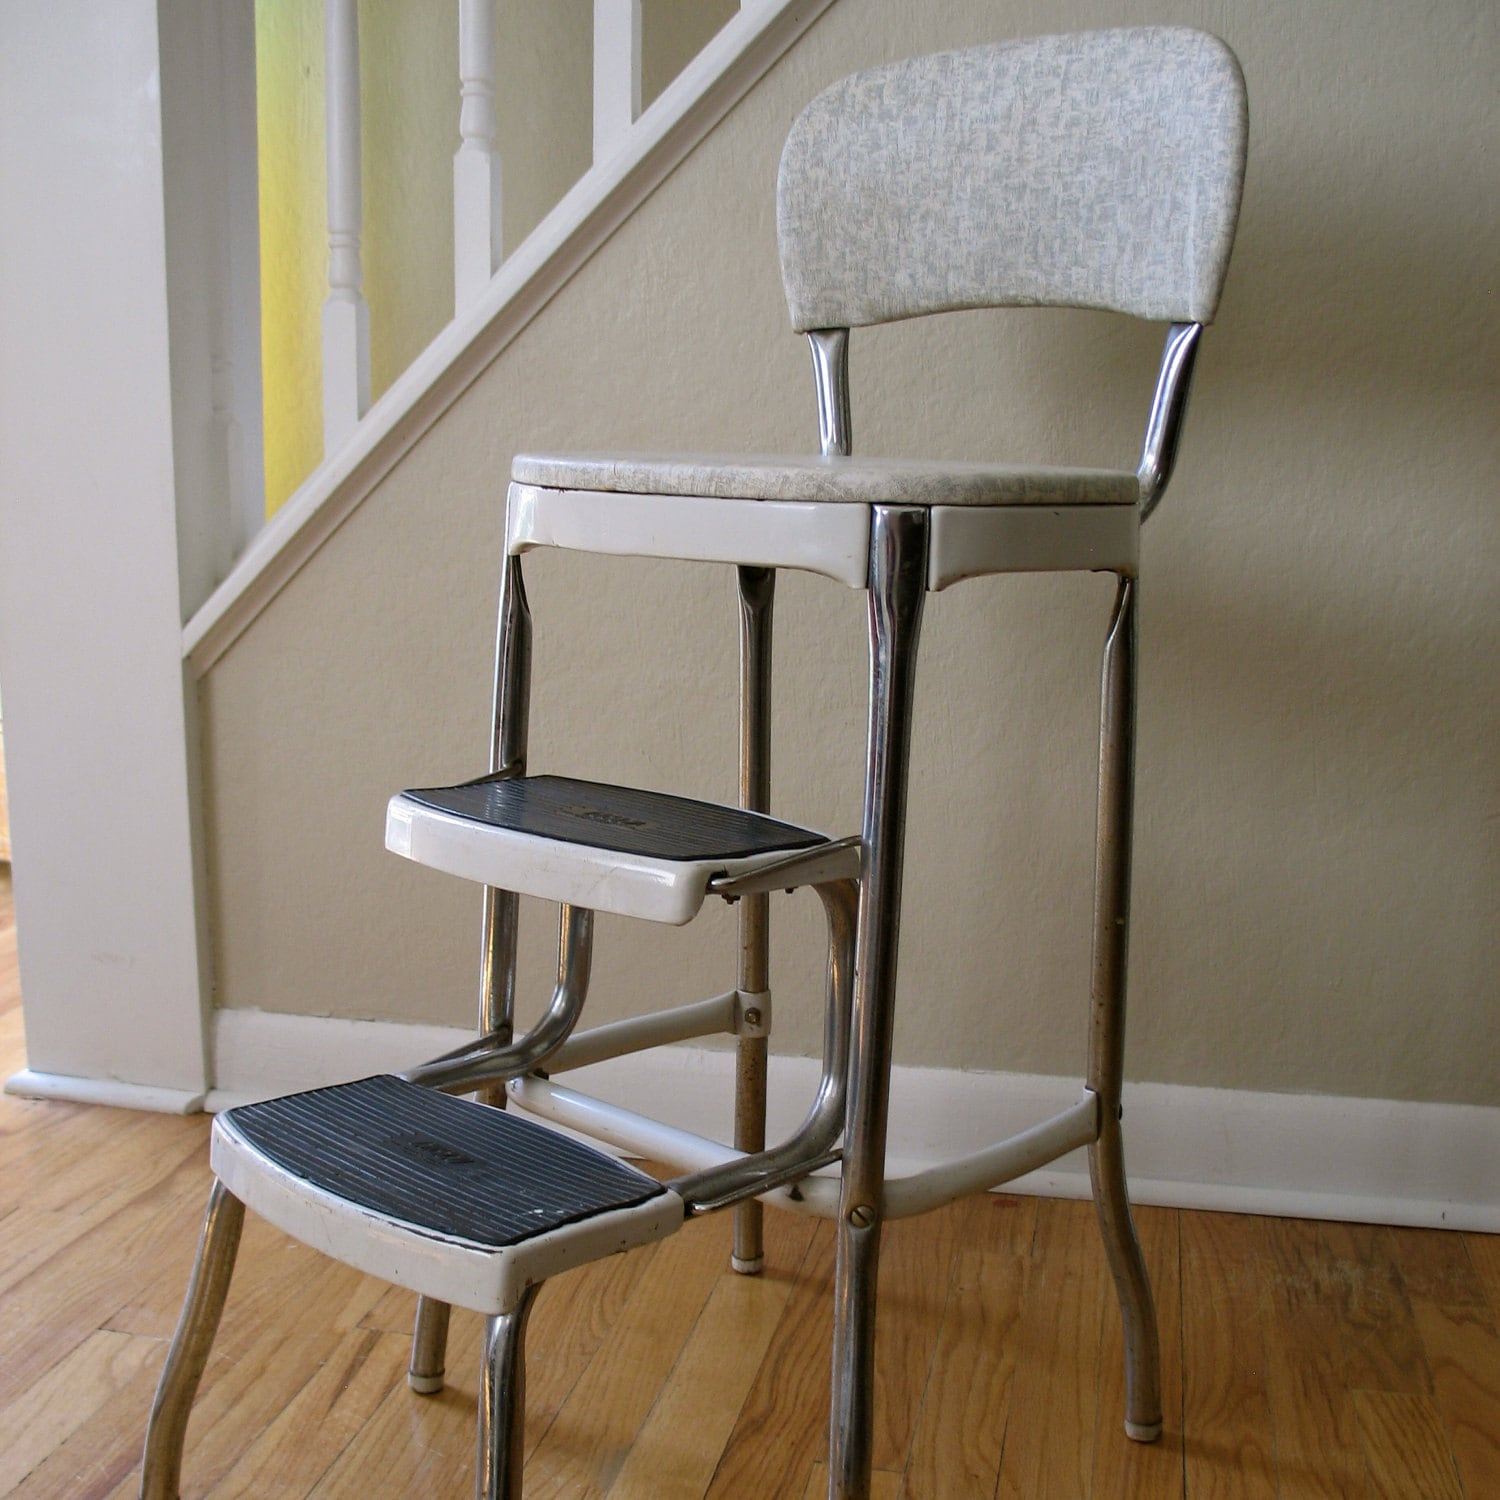 chair step stool lounge accessories vintage